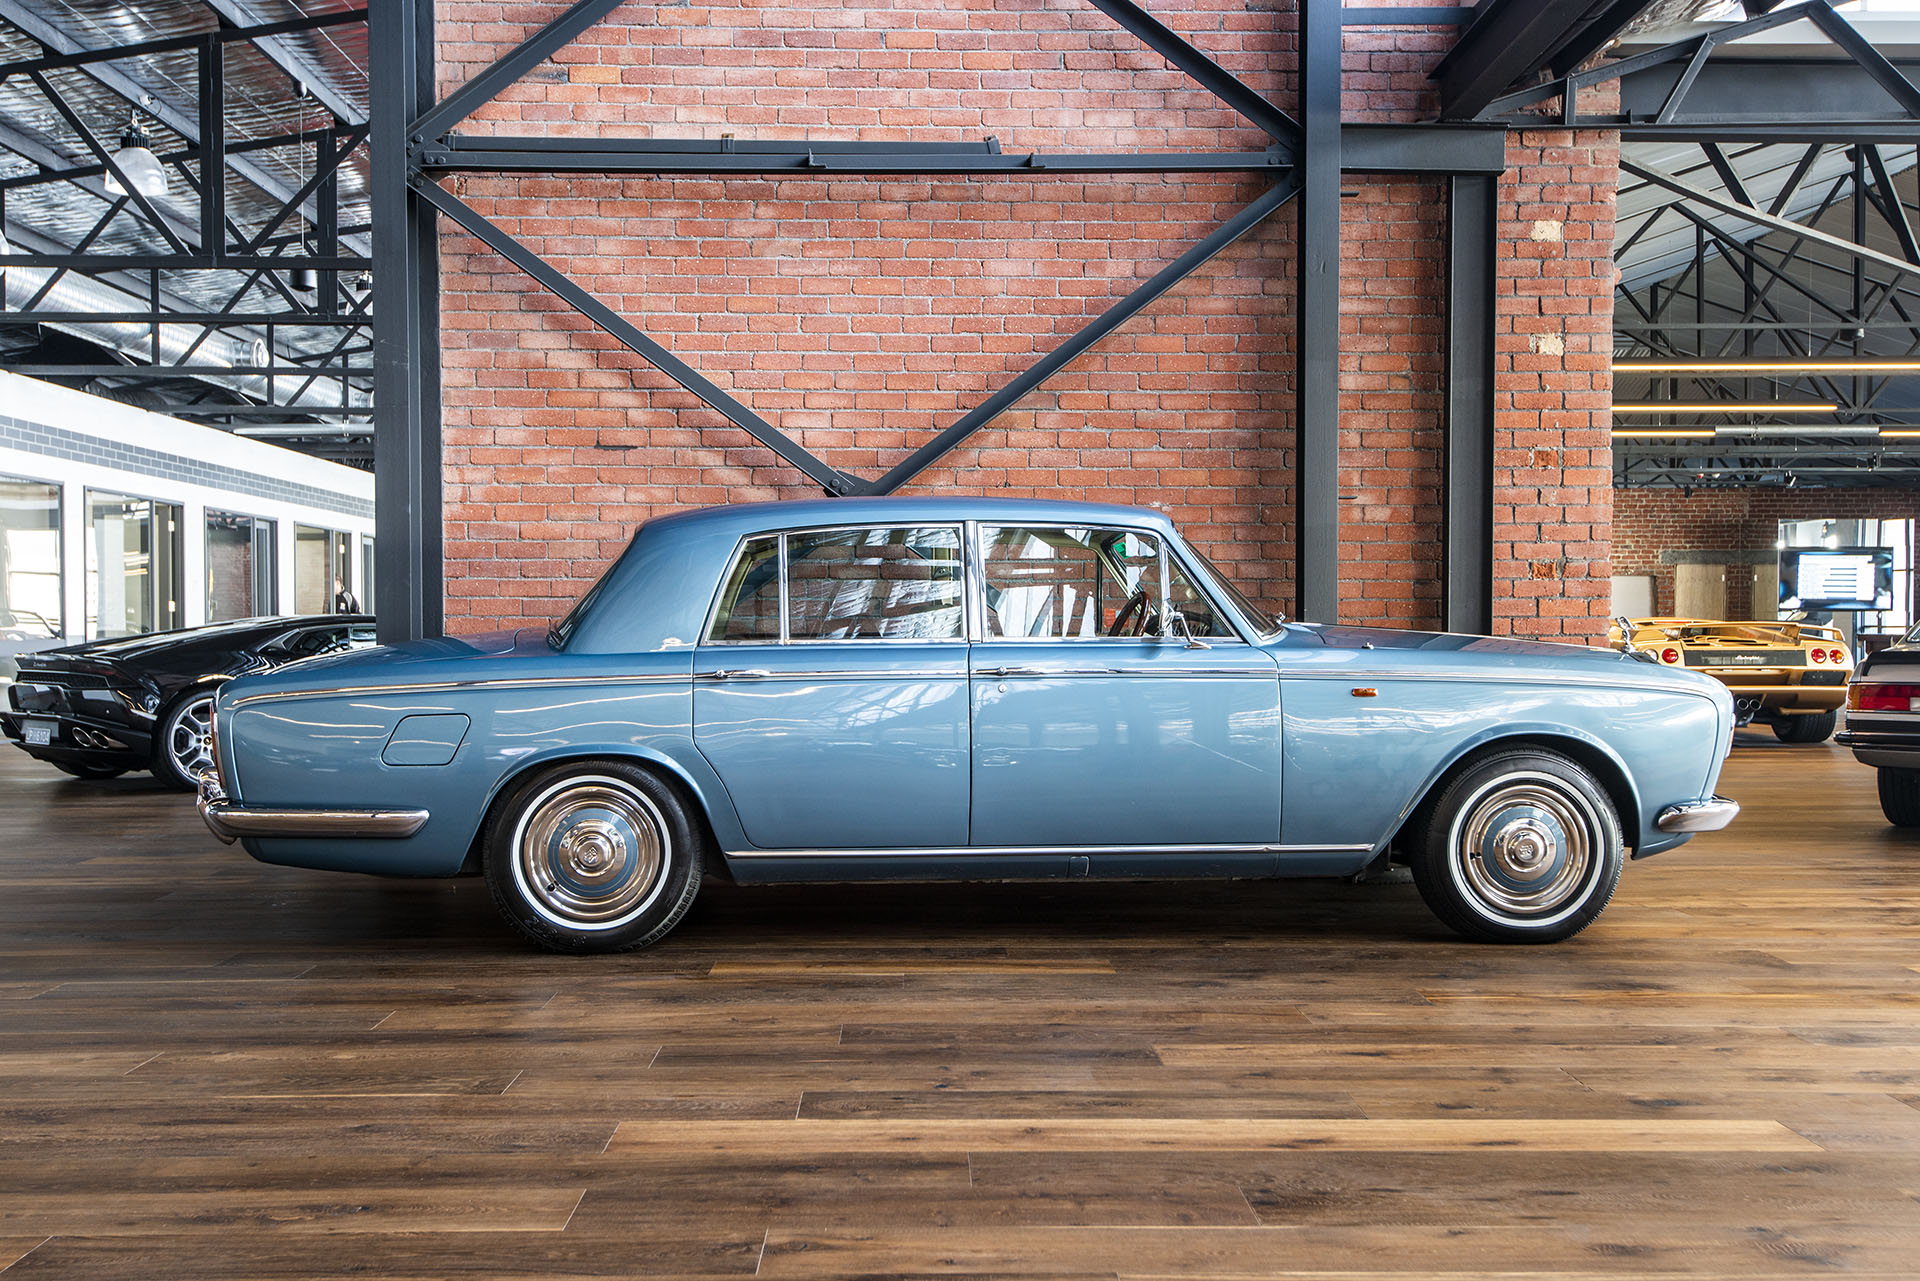 1969 Rolls Royce Silver Shadow Mk 1 - Richmonds - Classic And Prestige Cars